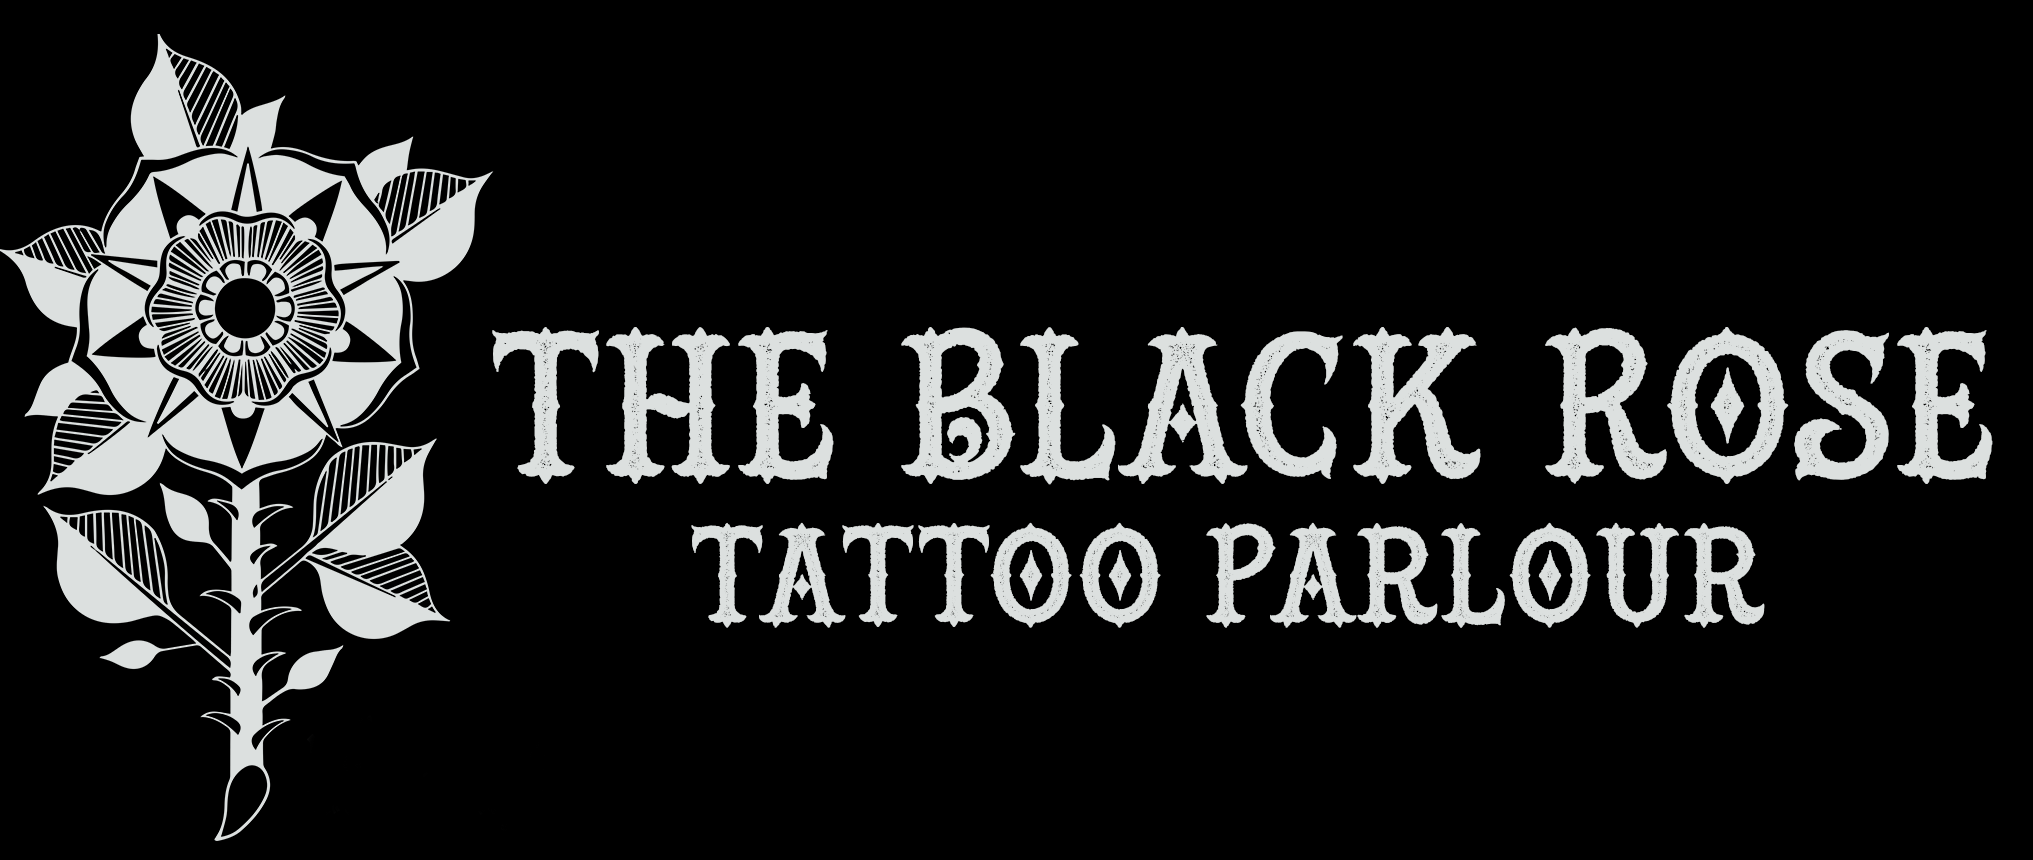 The Black Rose Tattoo Parlour